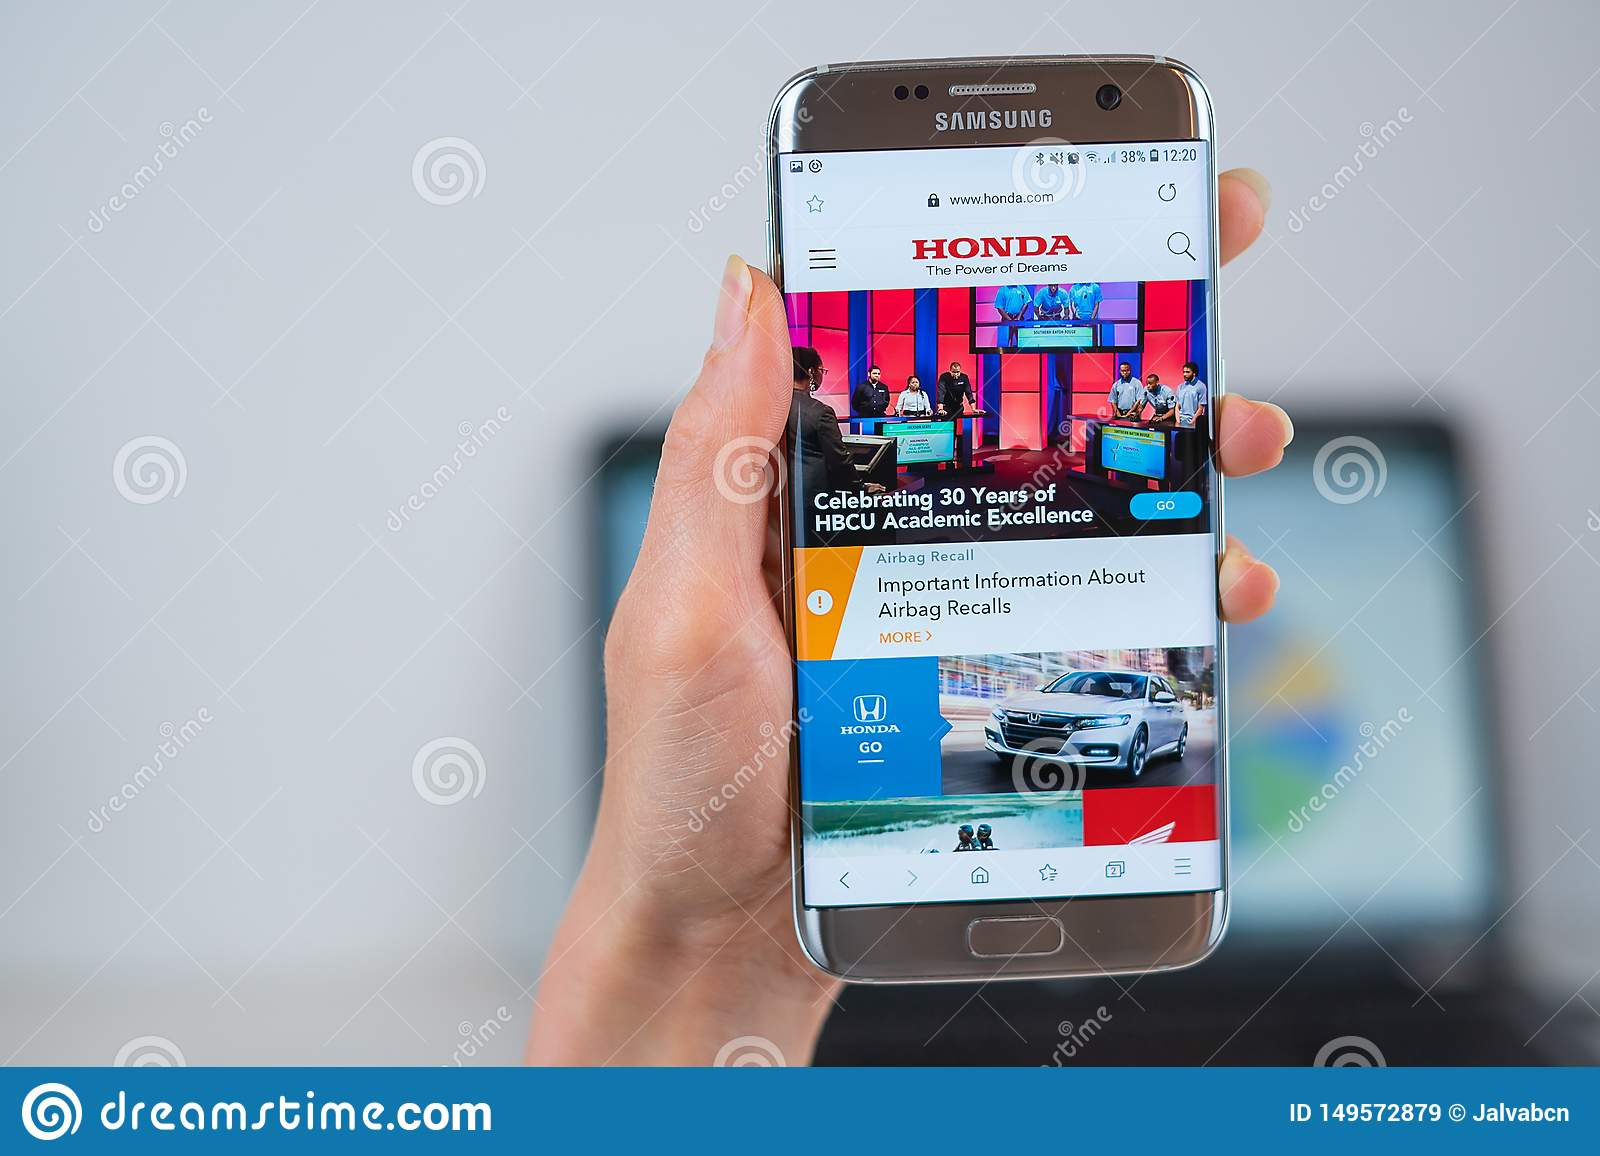 Honda Official Site >> Honda Web Site Opened On The Mobile Editorial Stock Image